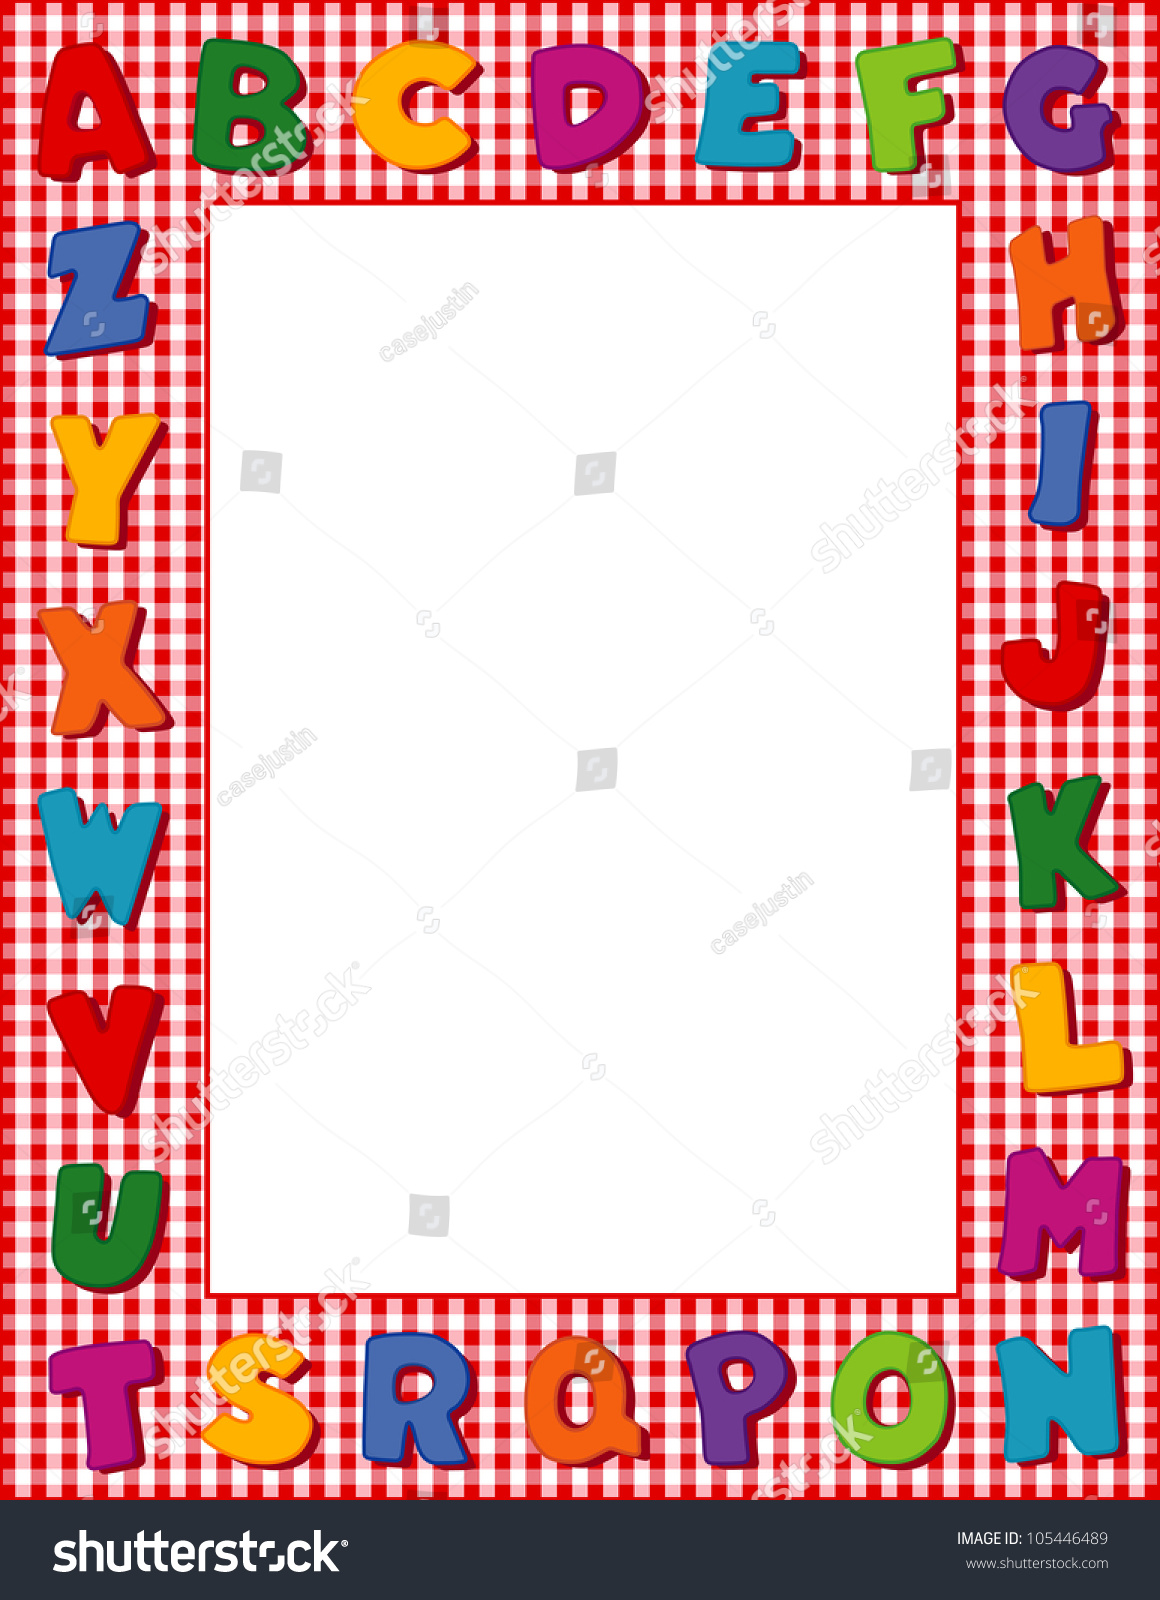 Free Cloth Letter Font